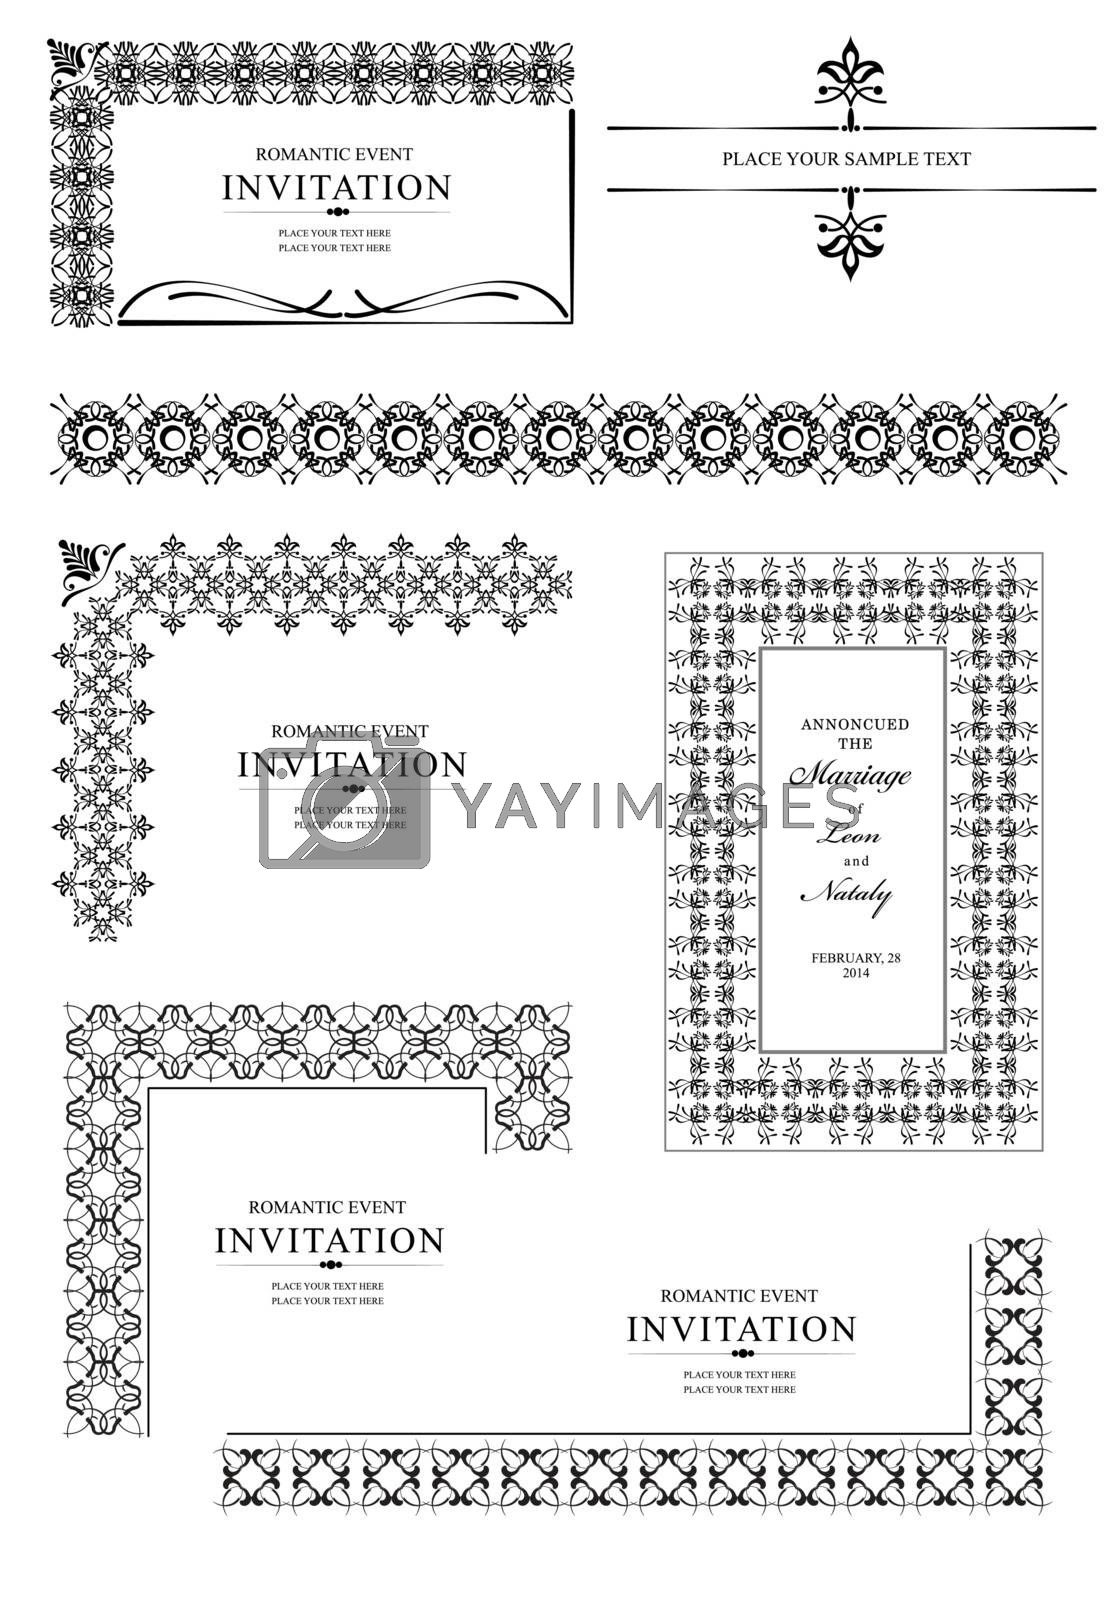 Royalty free image of Collection of Ornamental corners in vintage Design styles by leonido